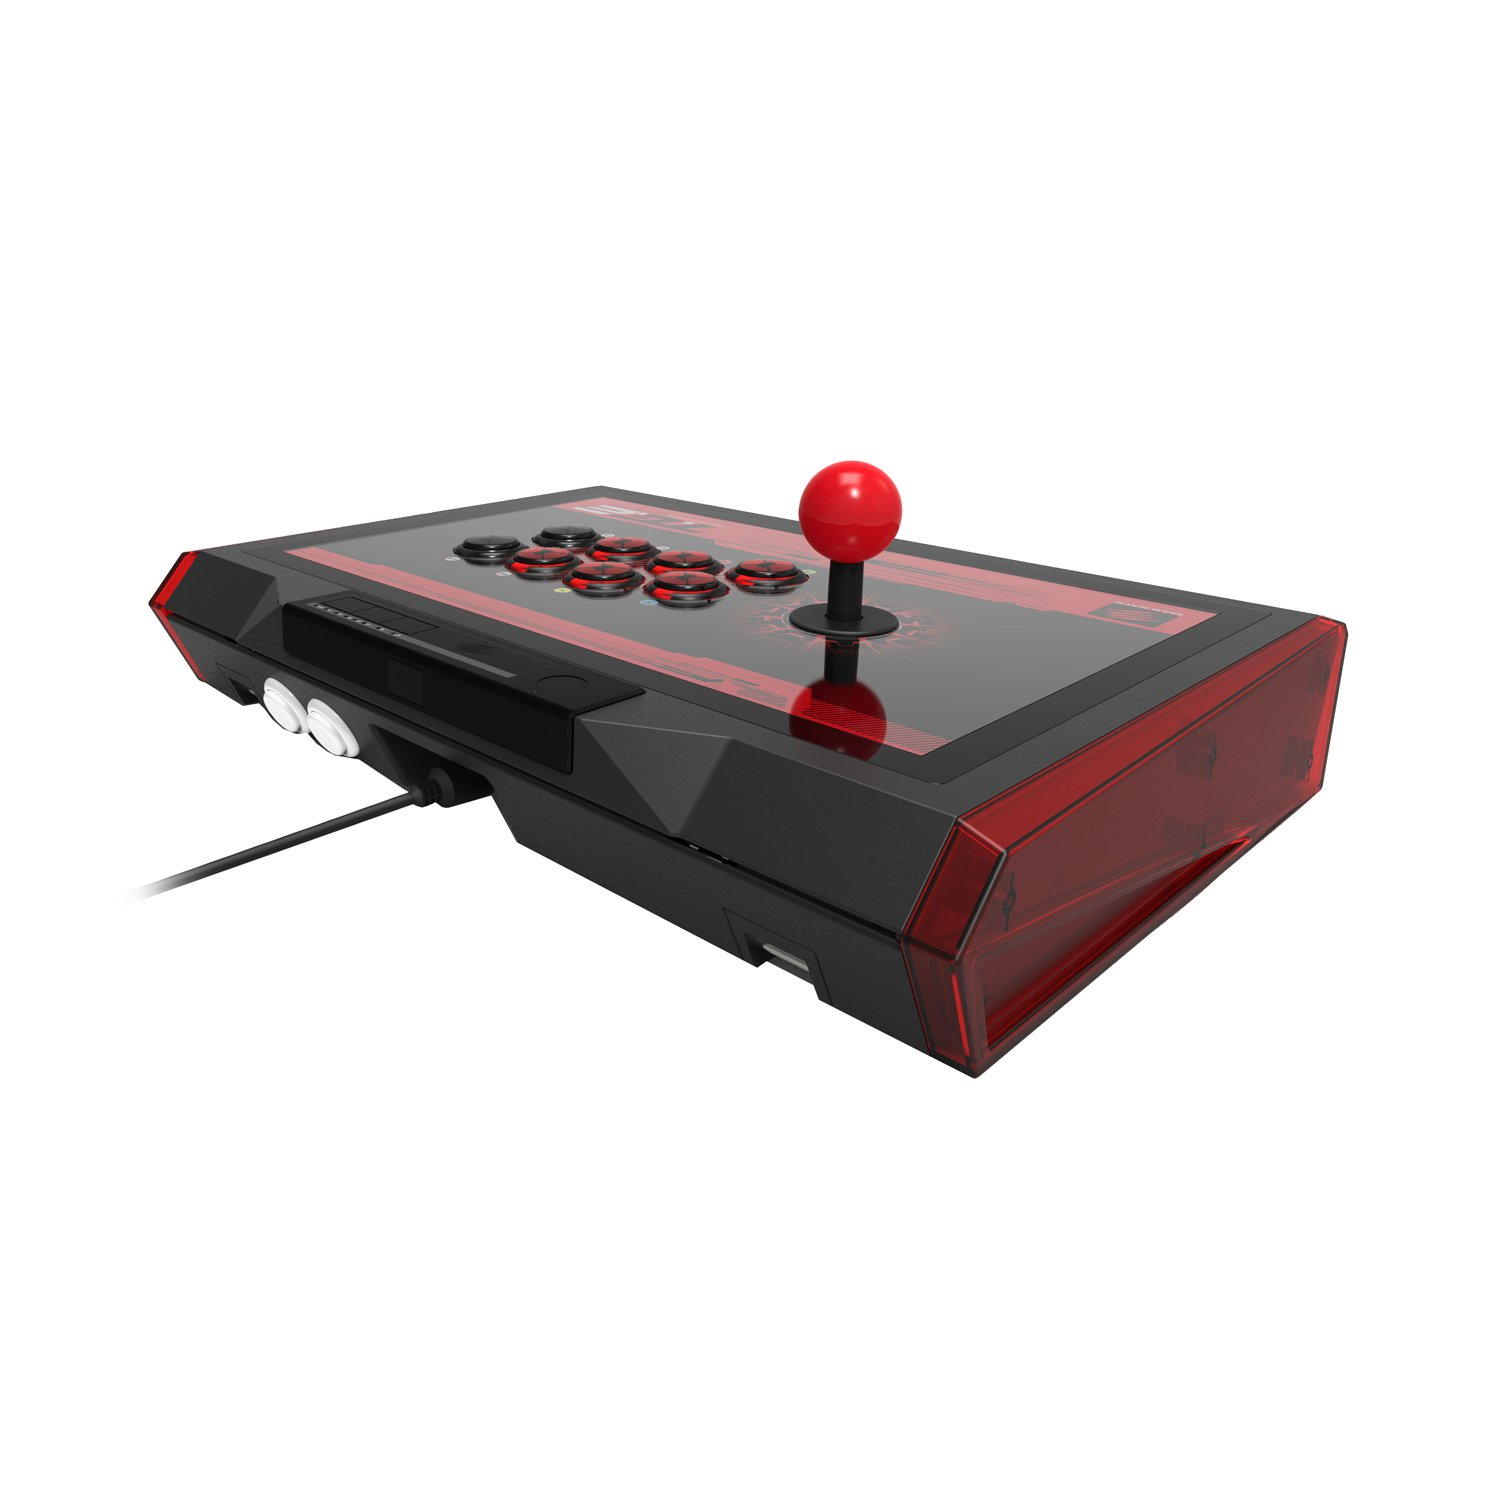 MadCatz Arcade Fightstick Tournament Edition 2 Announced For Xbox One #27215